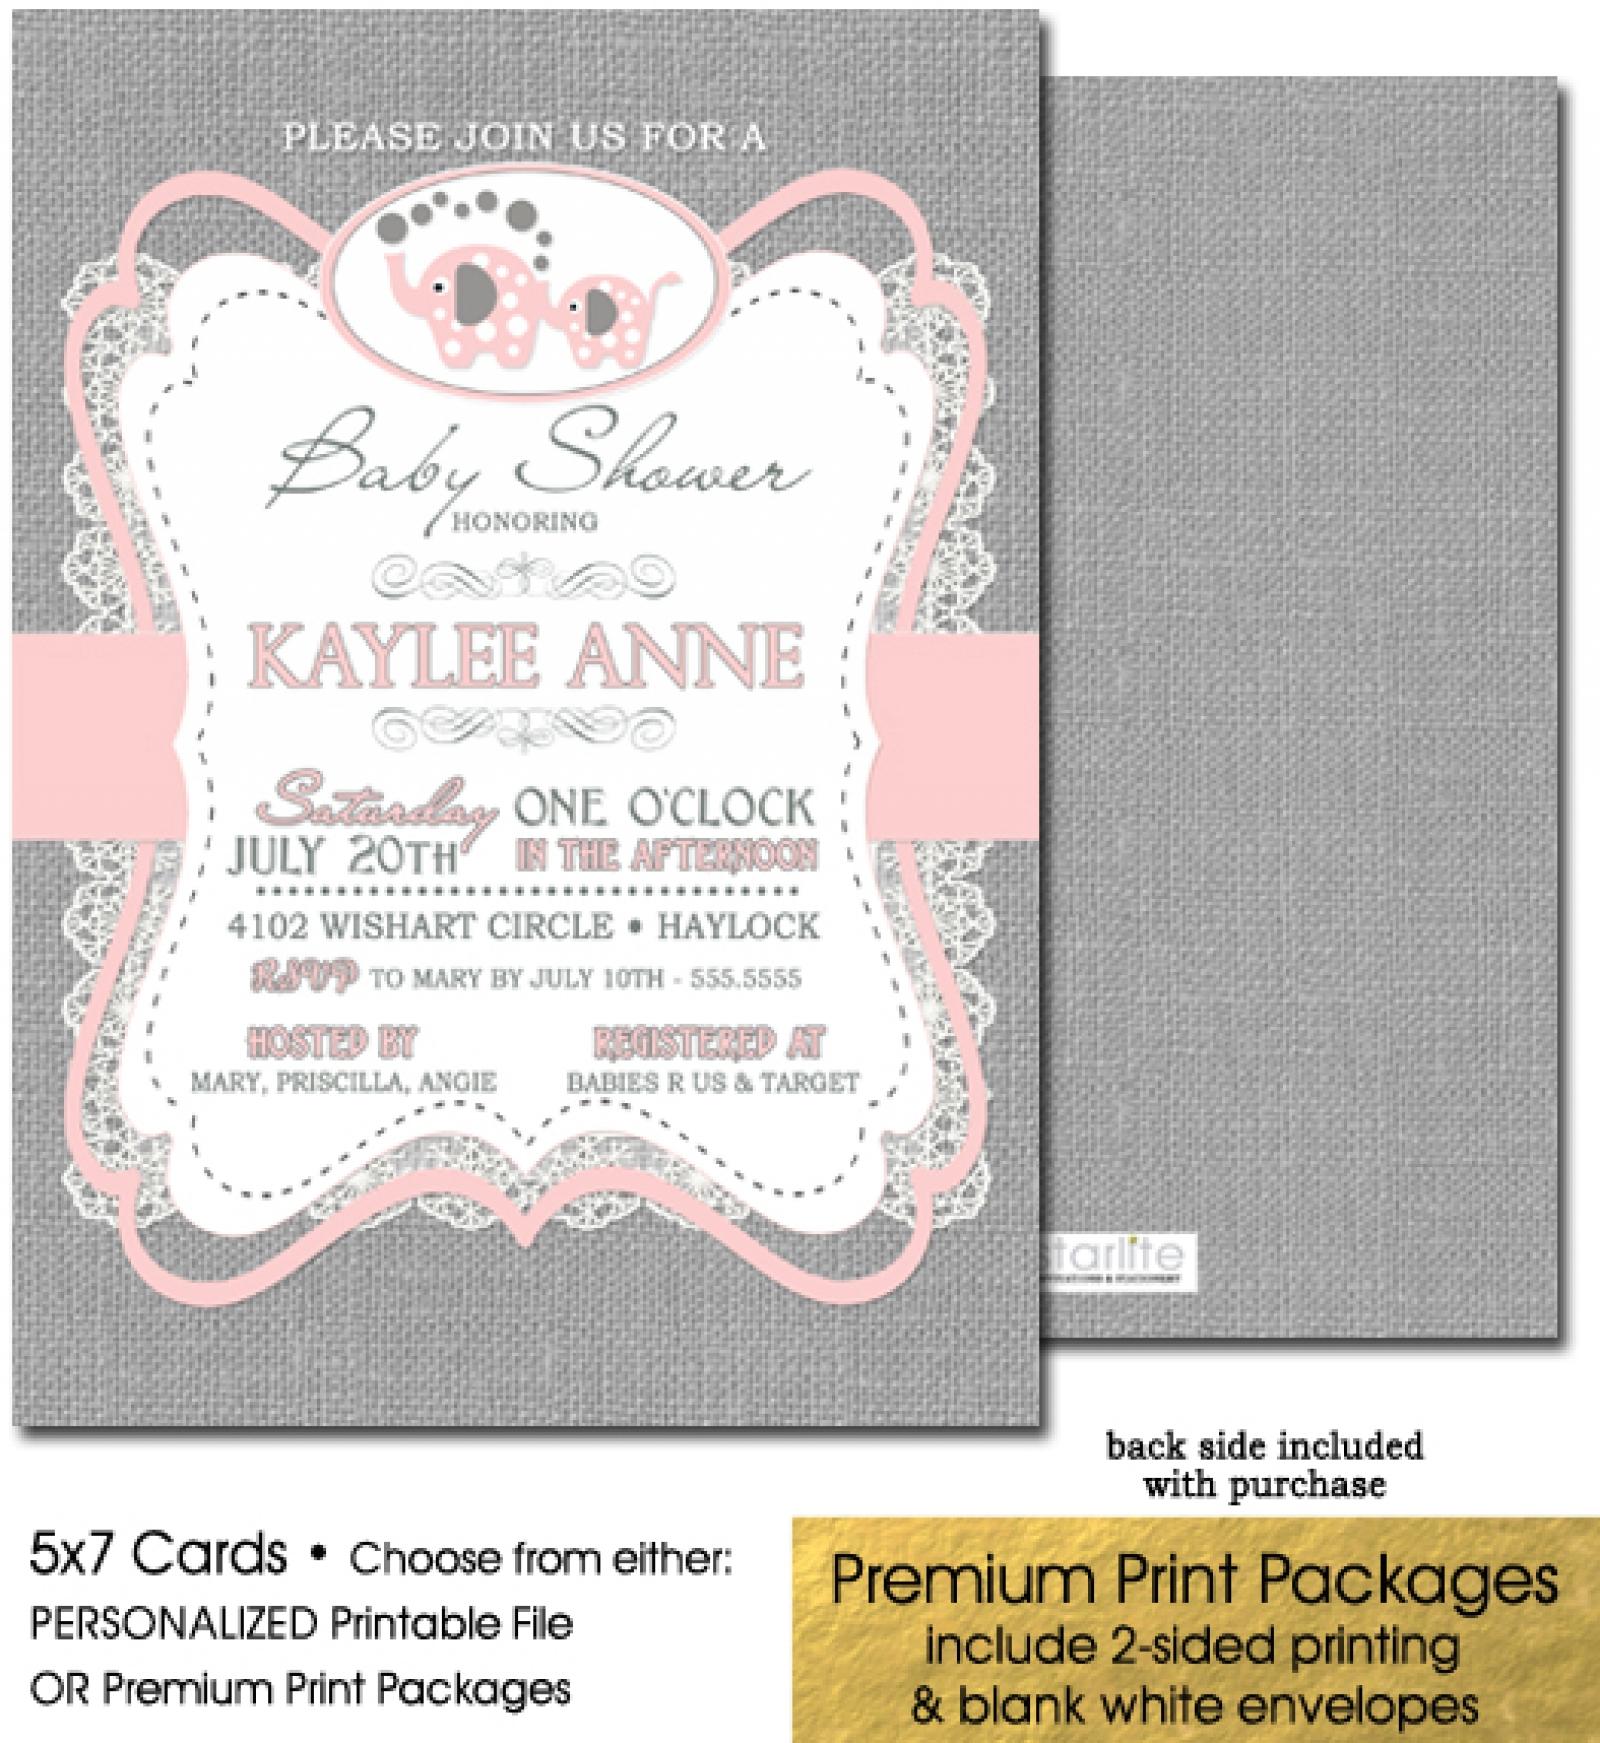 Full Size of Baby Shower:inspirational Elephant Baby Shower Invitations Photo Concepts Baby Shower Favor Ideas Noah's Ark Baby Shower Baby Shower Table Ideas Mesa Baby Shower Creative Baby Shower Gifts Baby Shower Plates